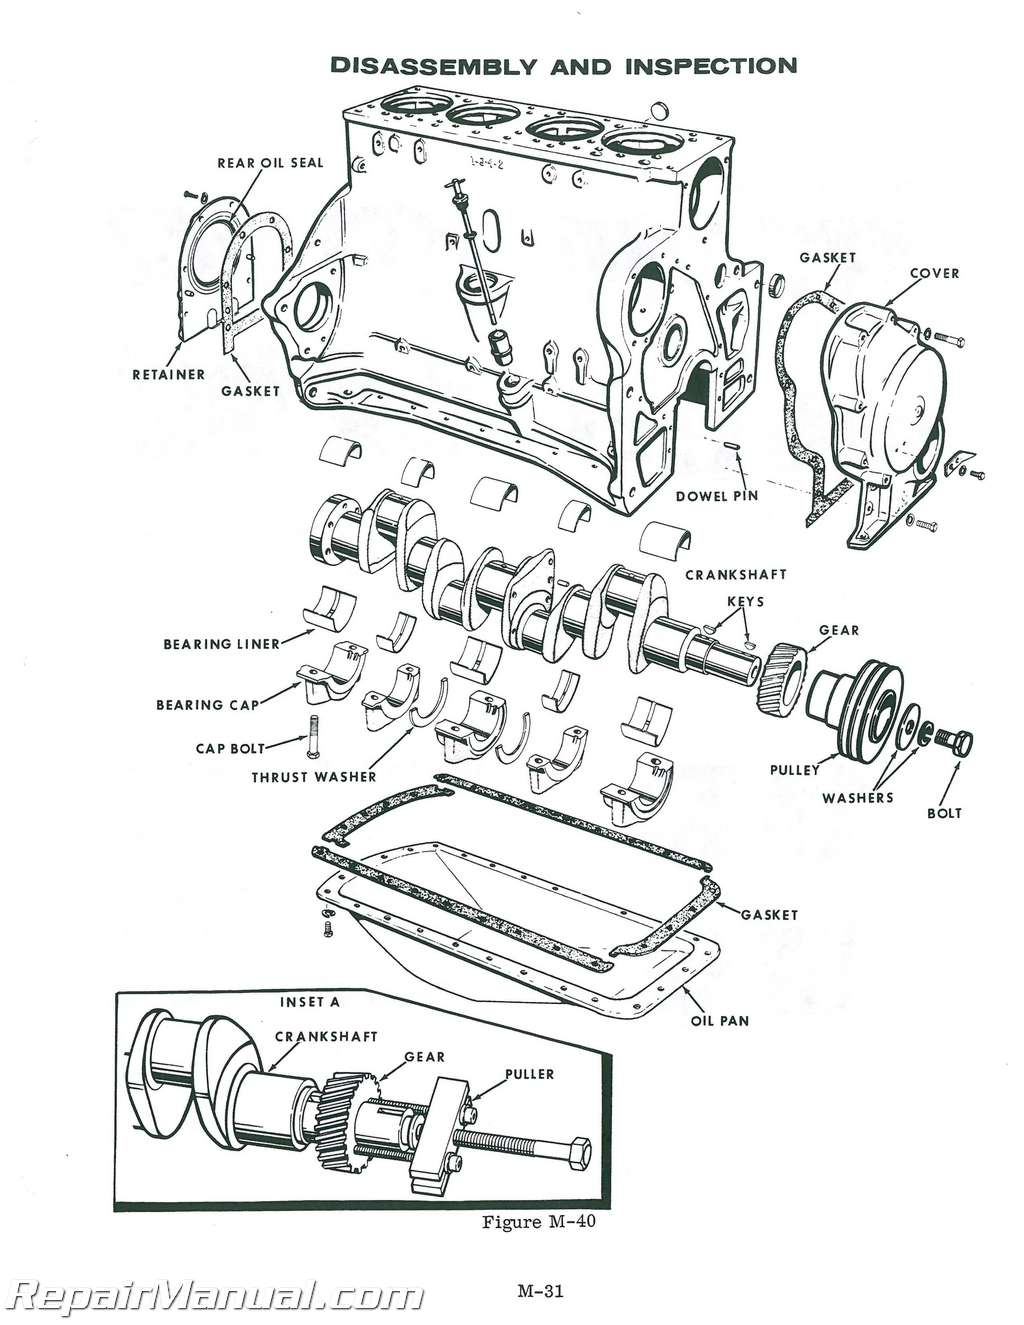 CASE 1150 Crawler Service Manual